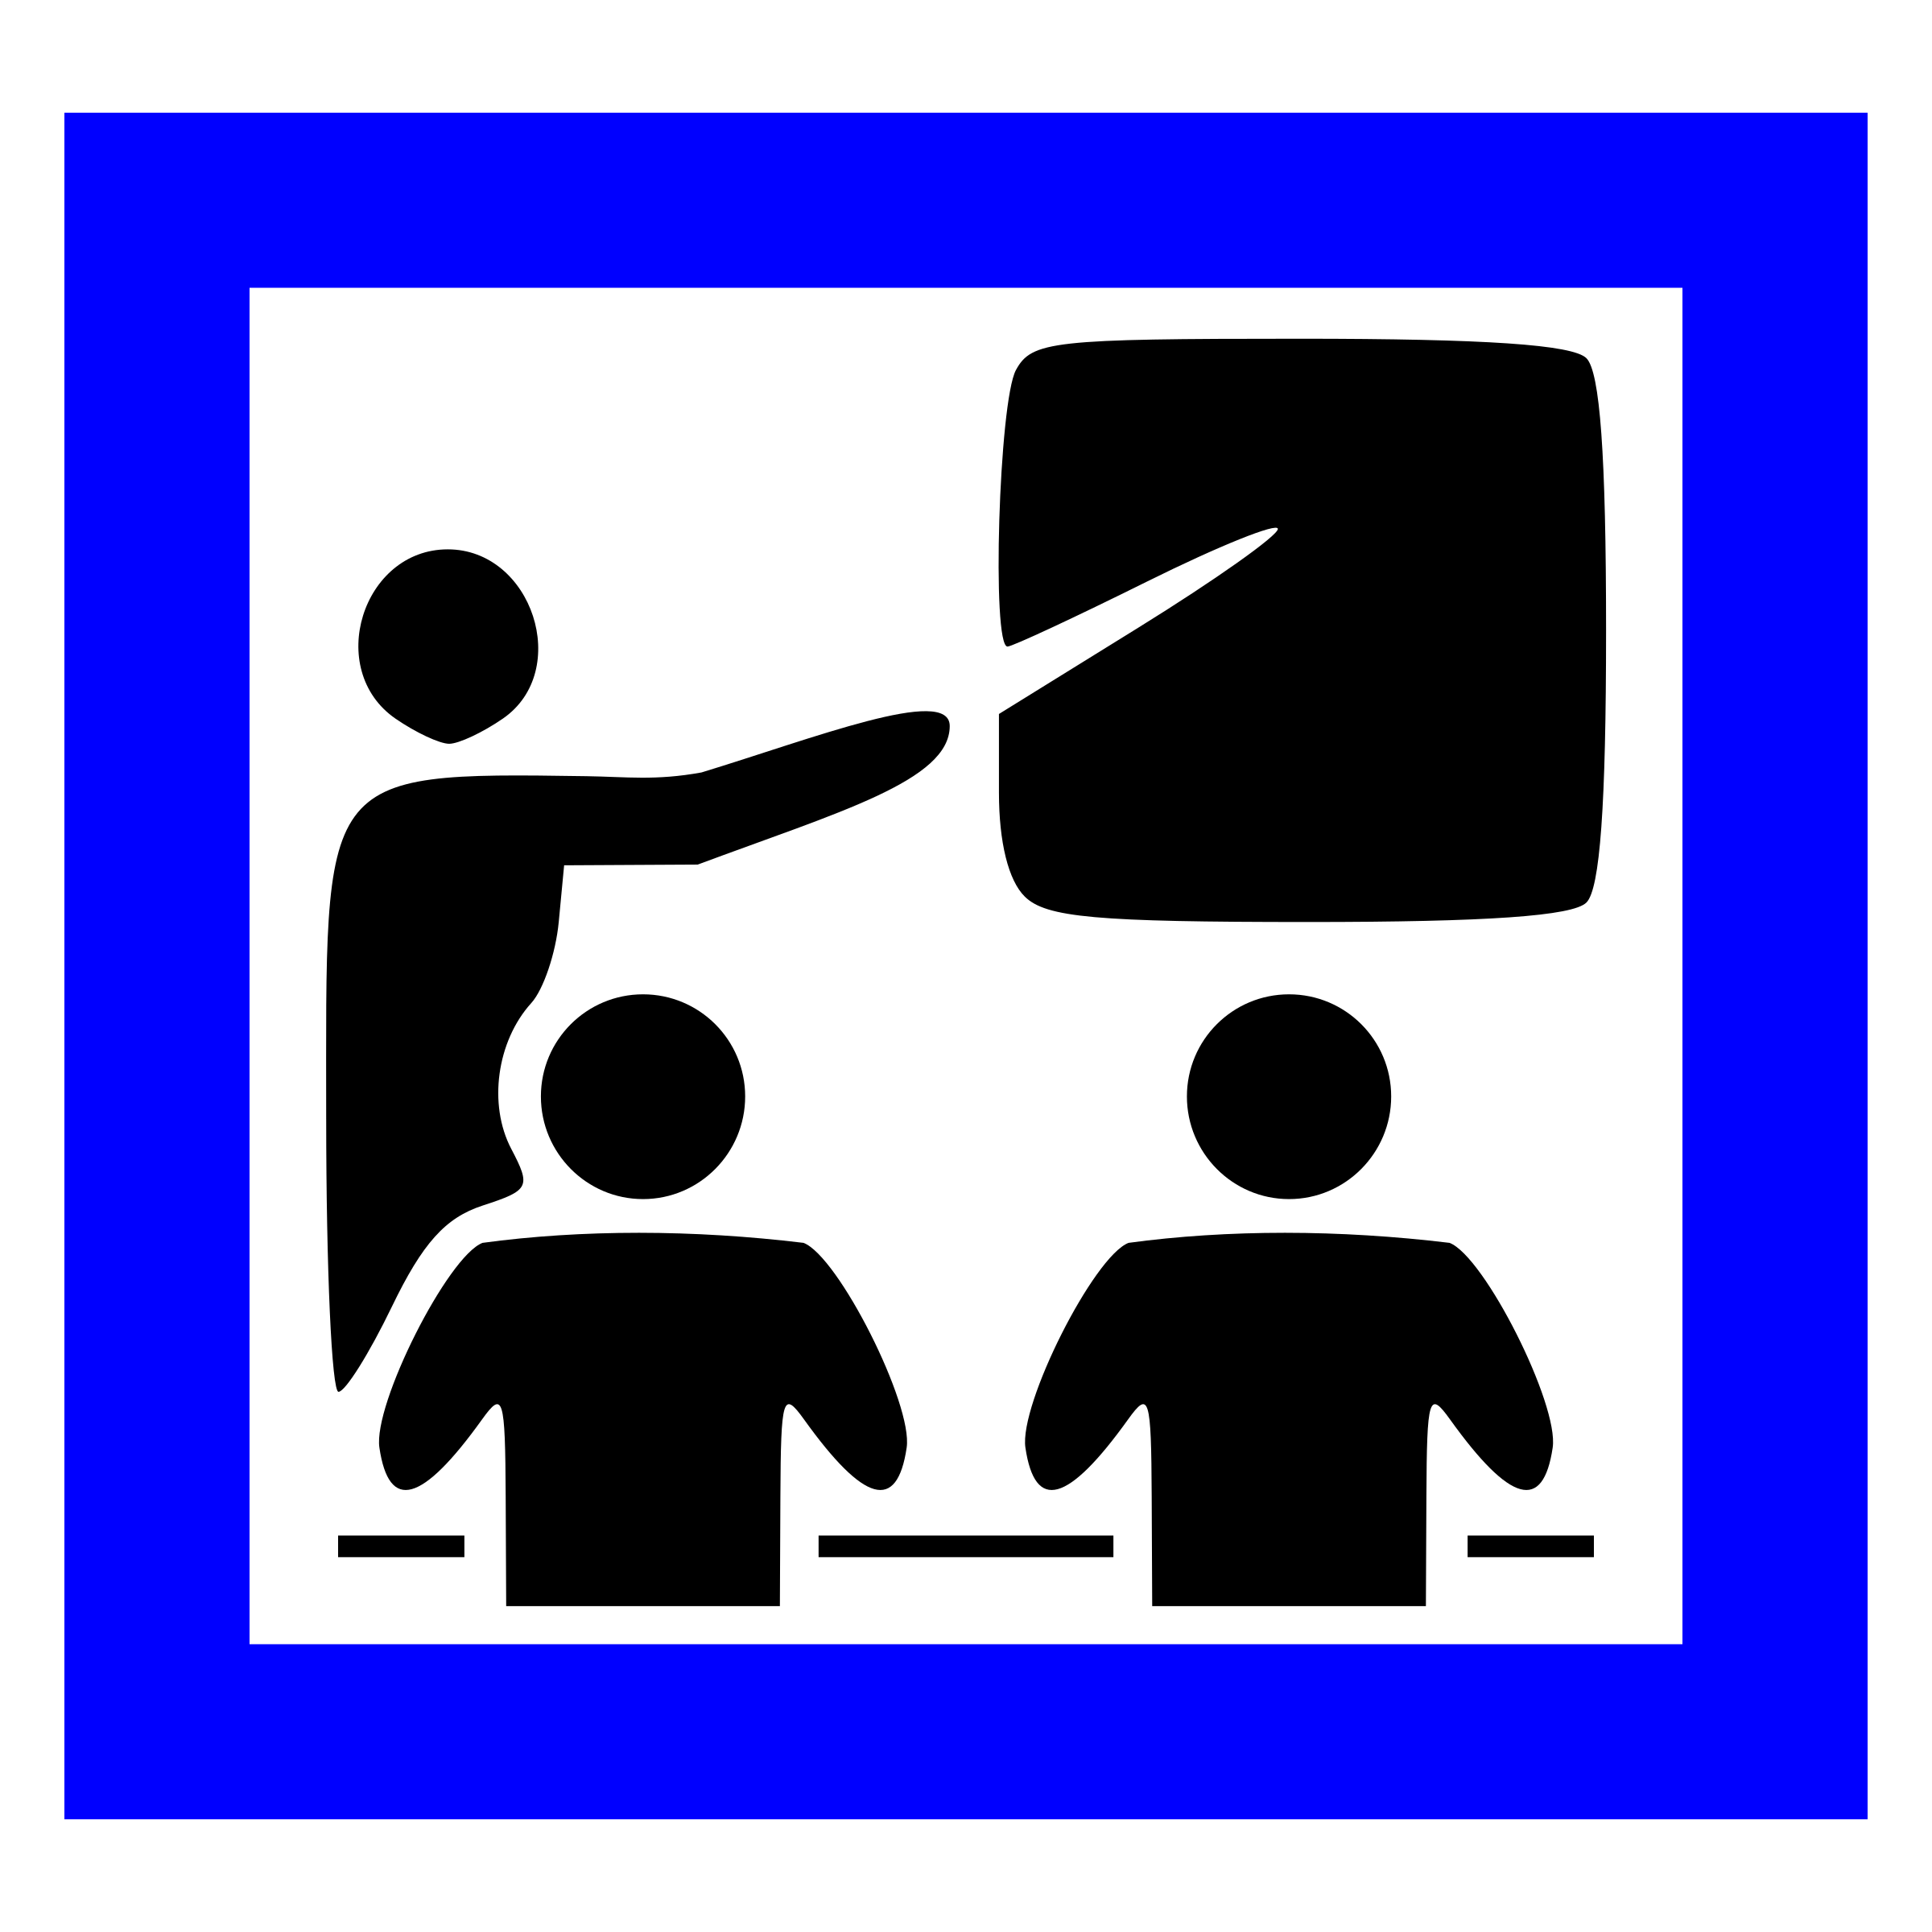 BIG IMAGE (PNG): https://openclipart.org/detail/169441/training-icon-by-forestgreen